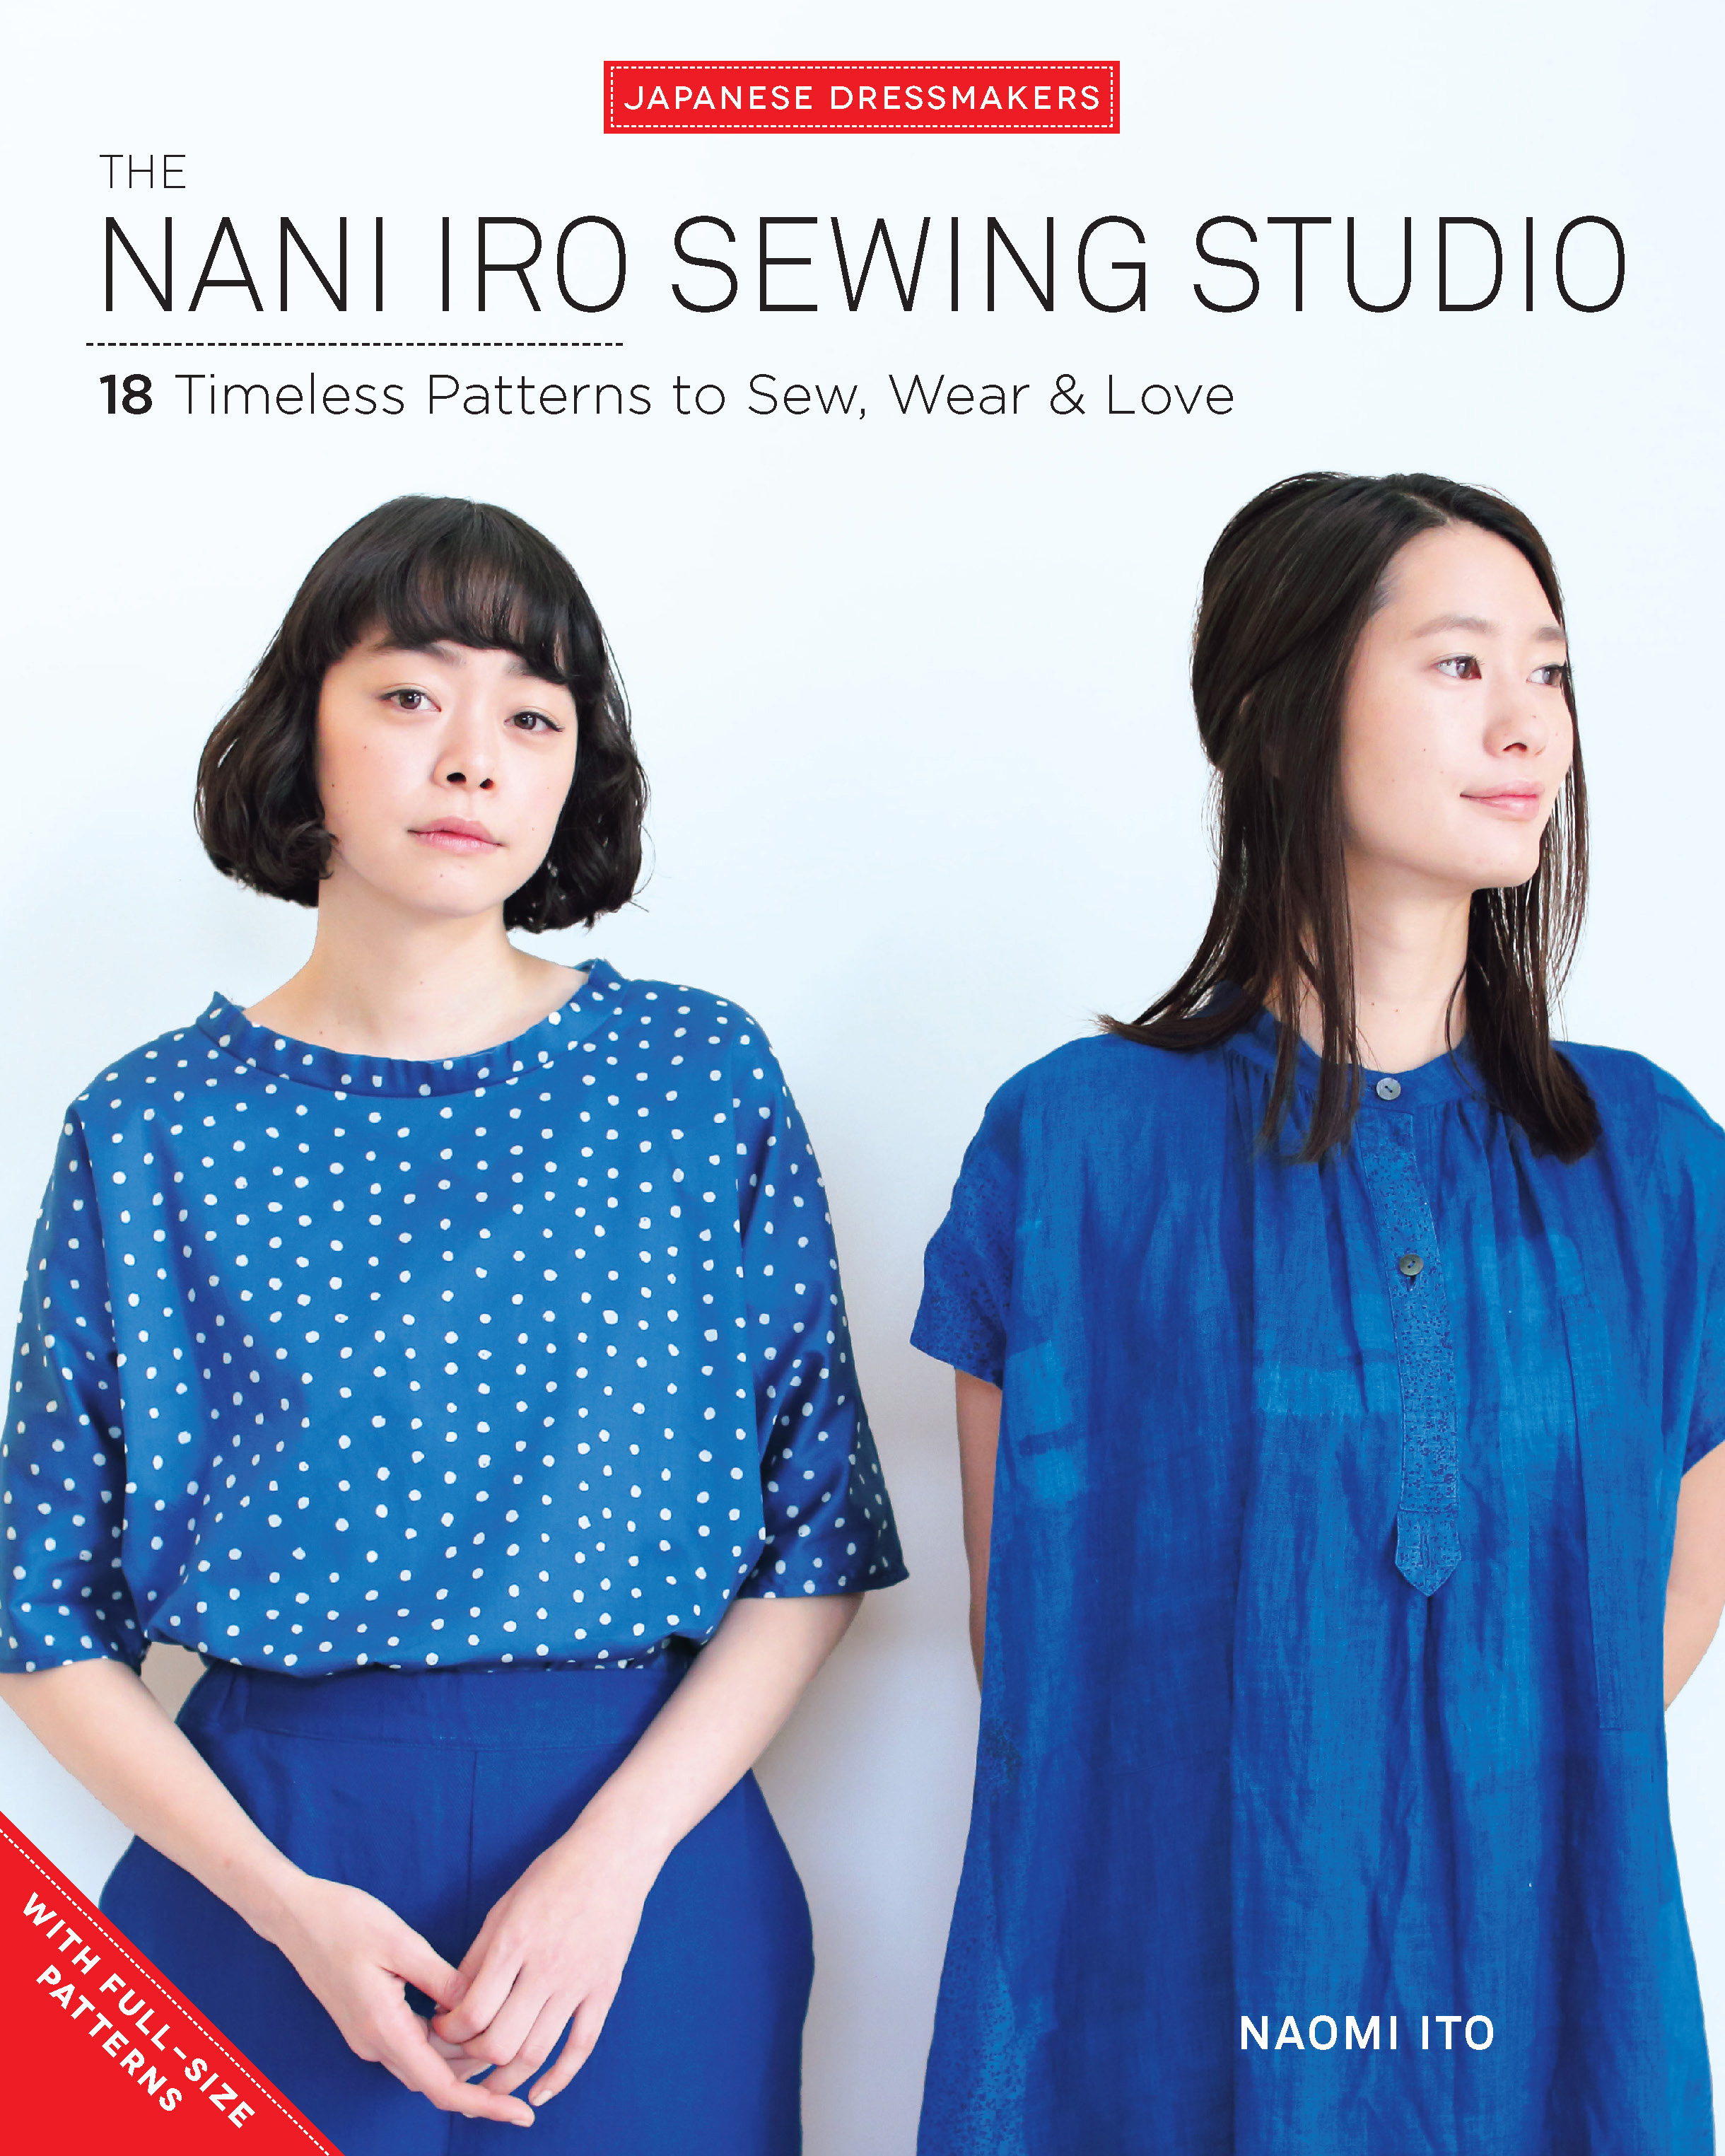 The Nani Iro Sewing Studio Front Cover.jpg